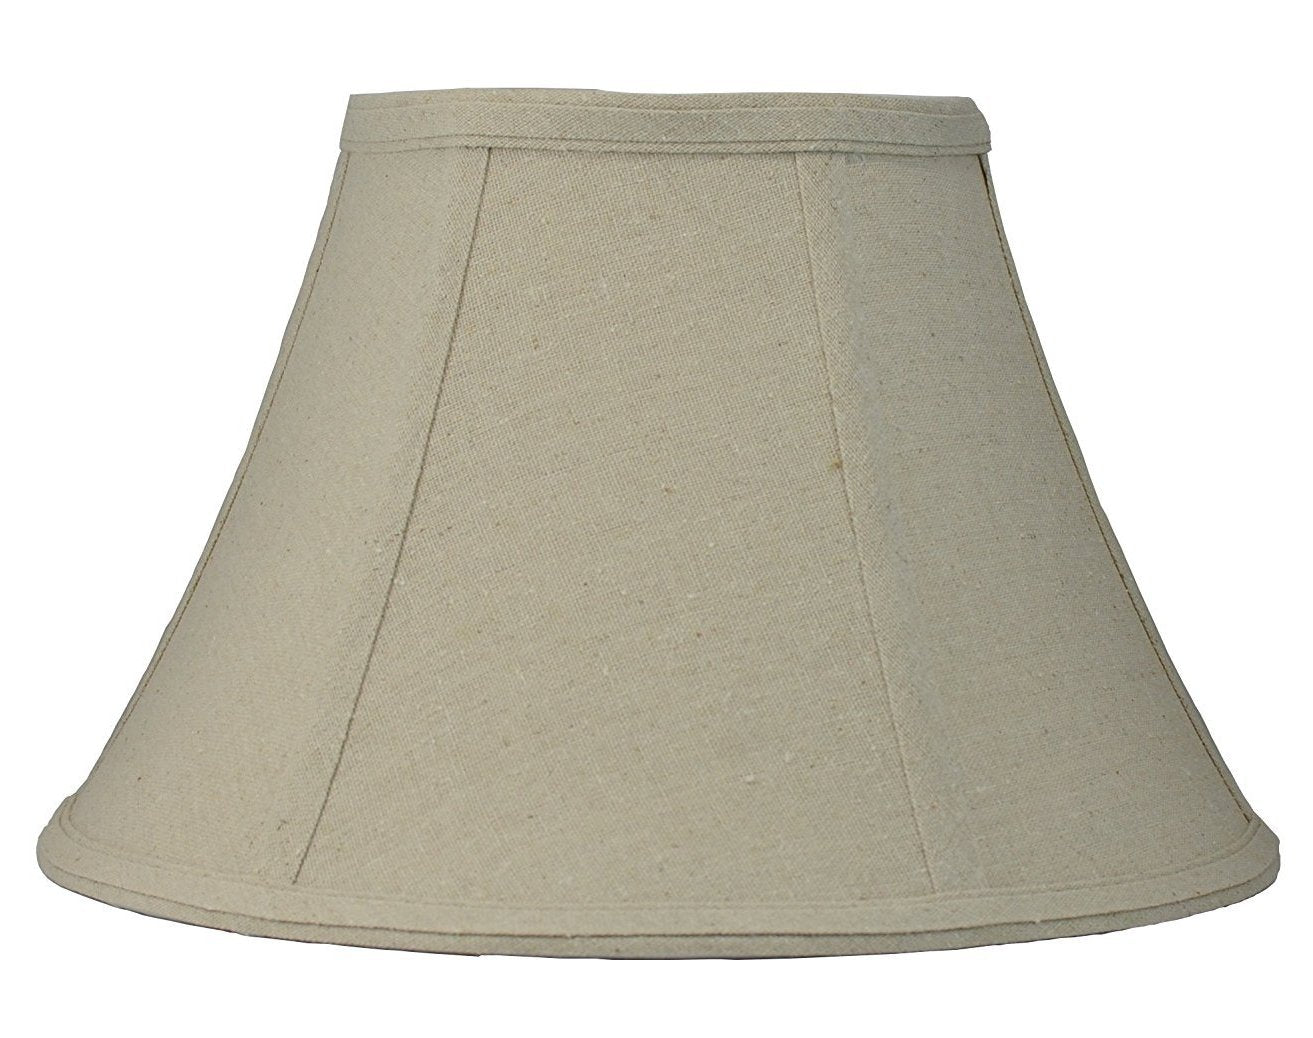 Softback Bell Lampshade,Natural Linen, 16-inch Bottom Diameter, 9-inch Height, Spider